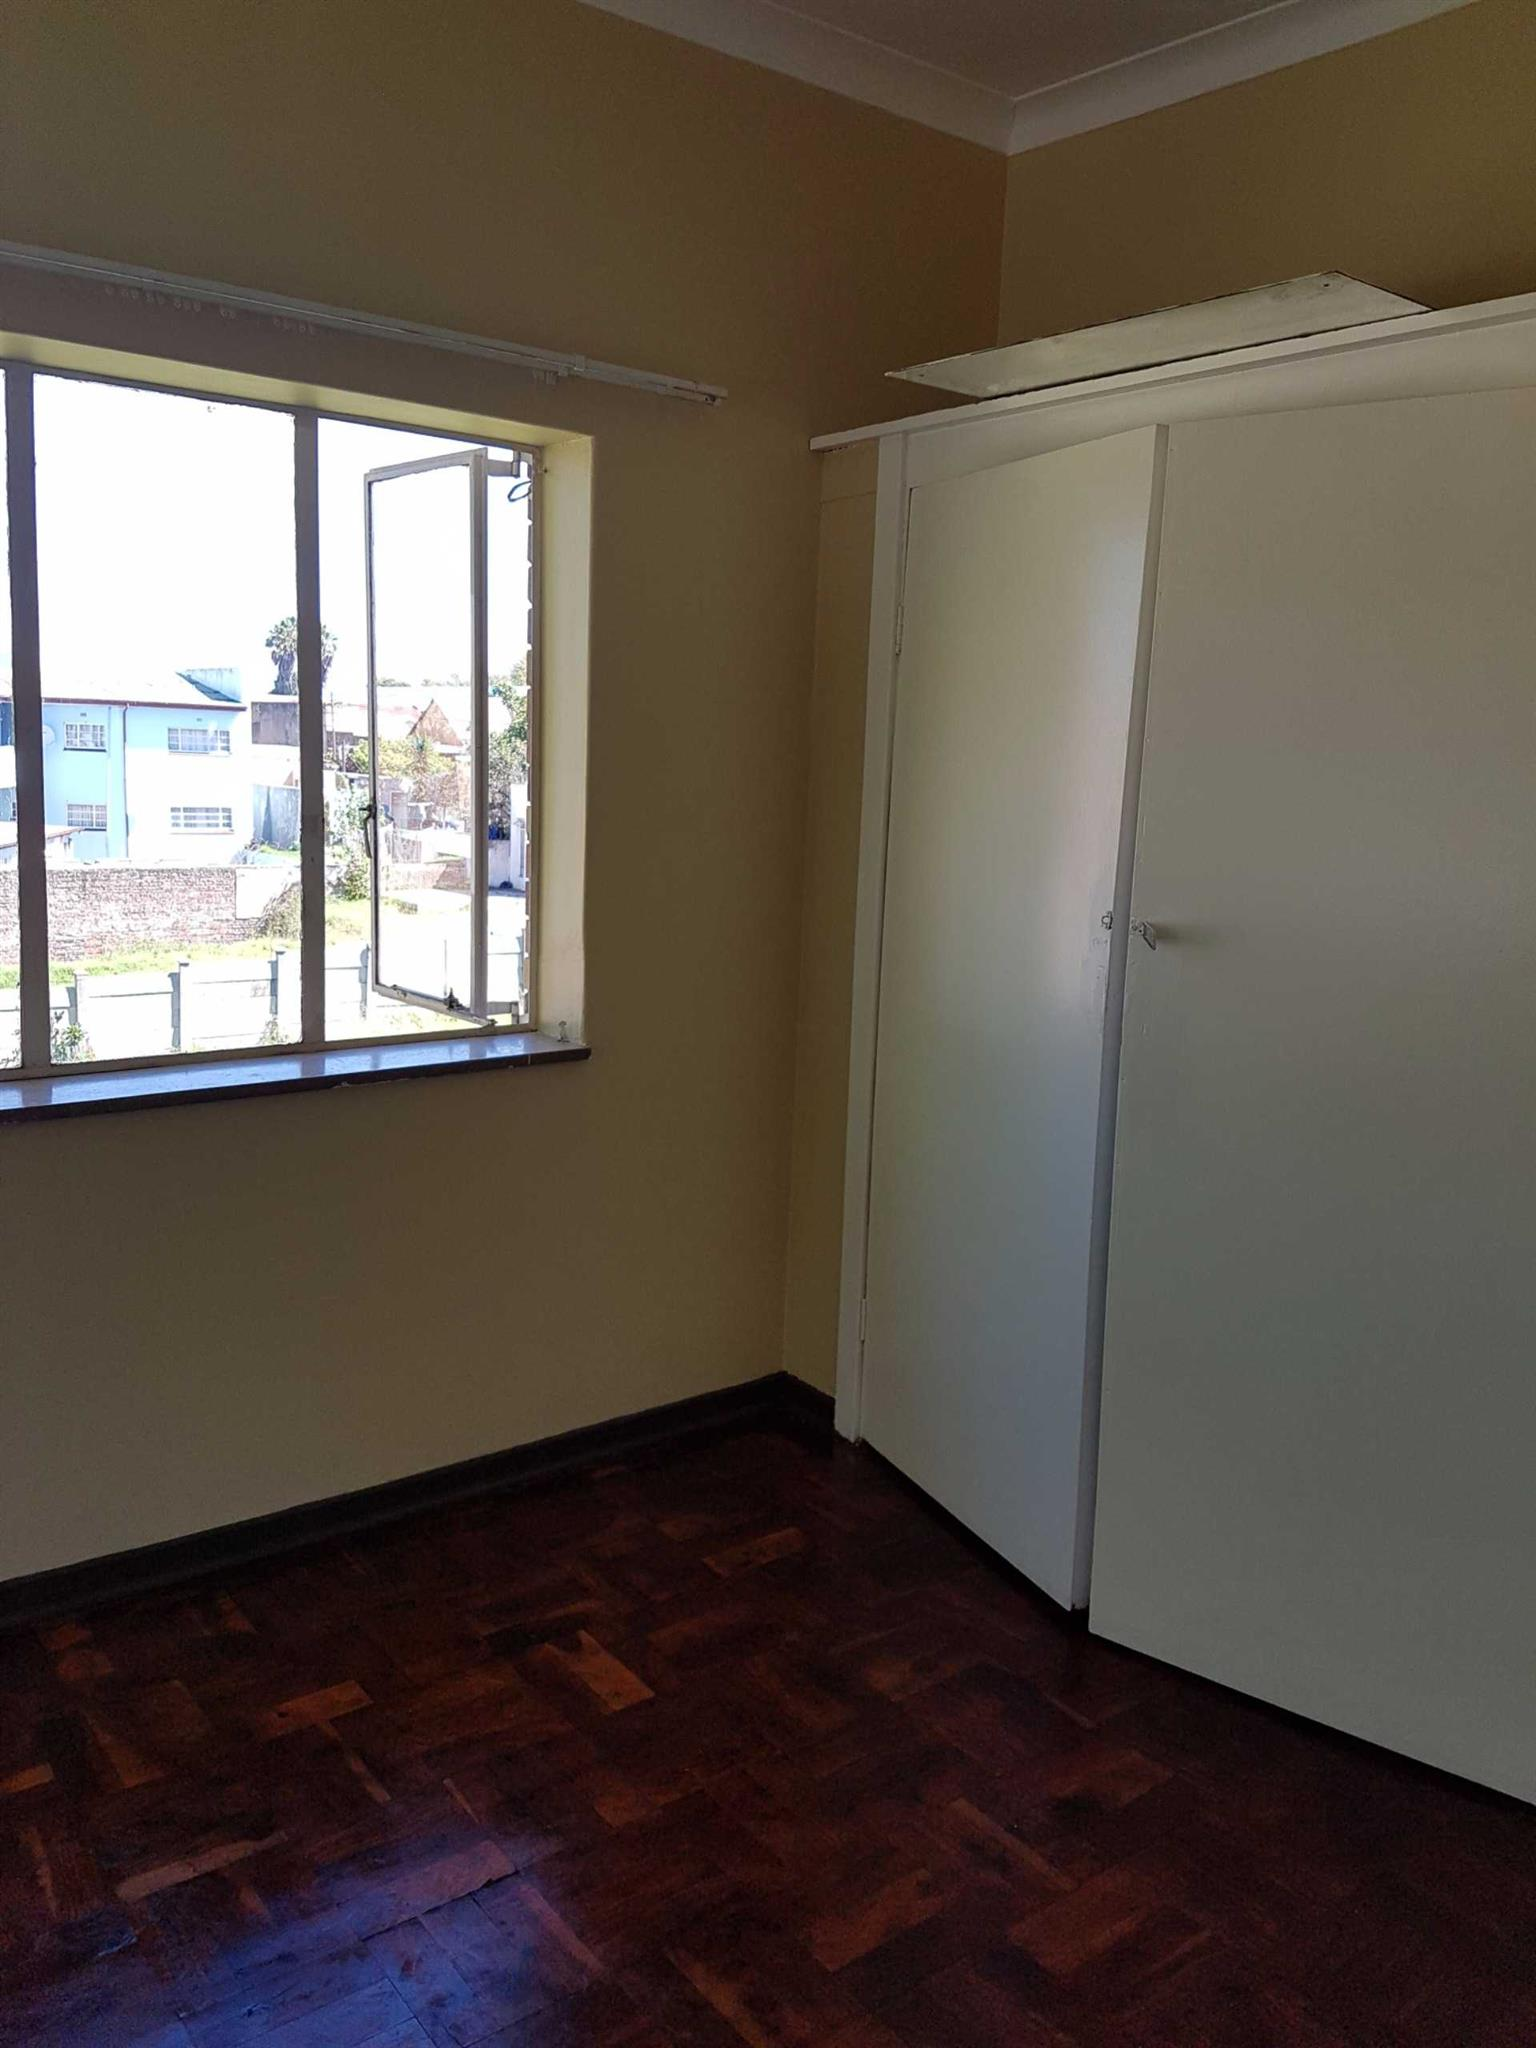 Newclare 1bedroomed flat to rent for R2700